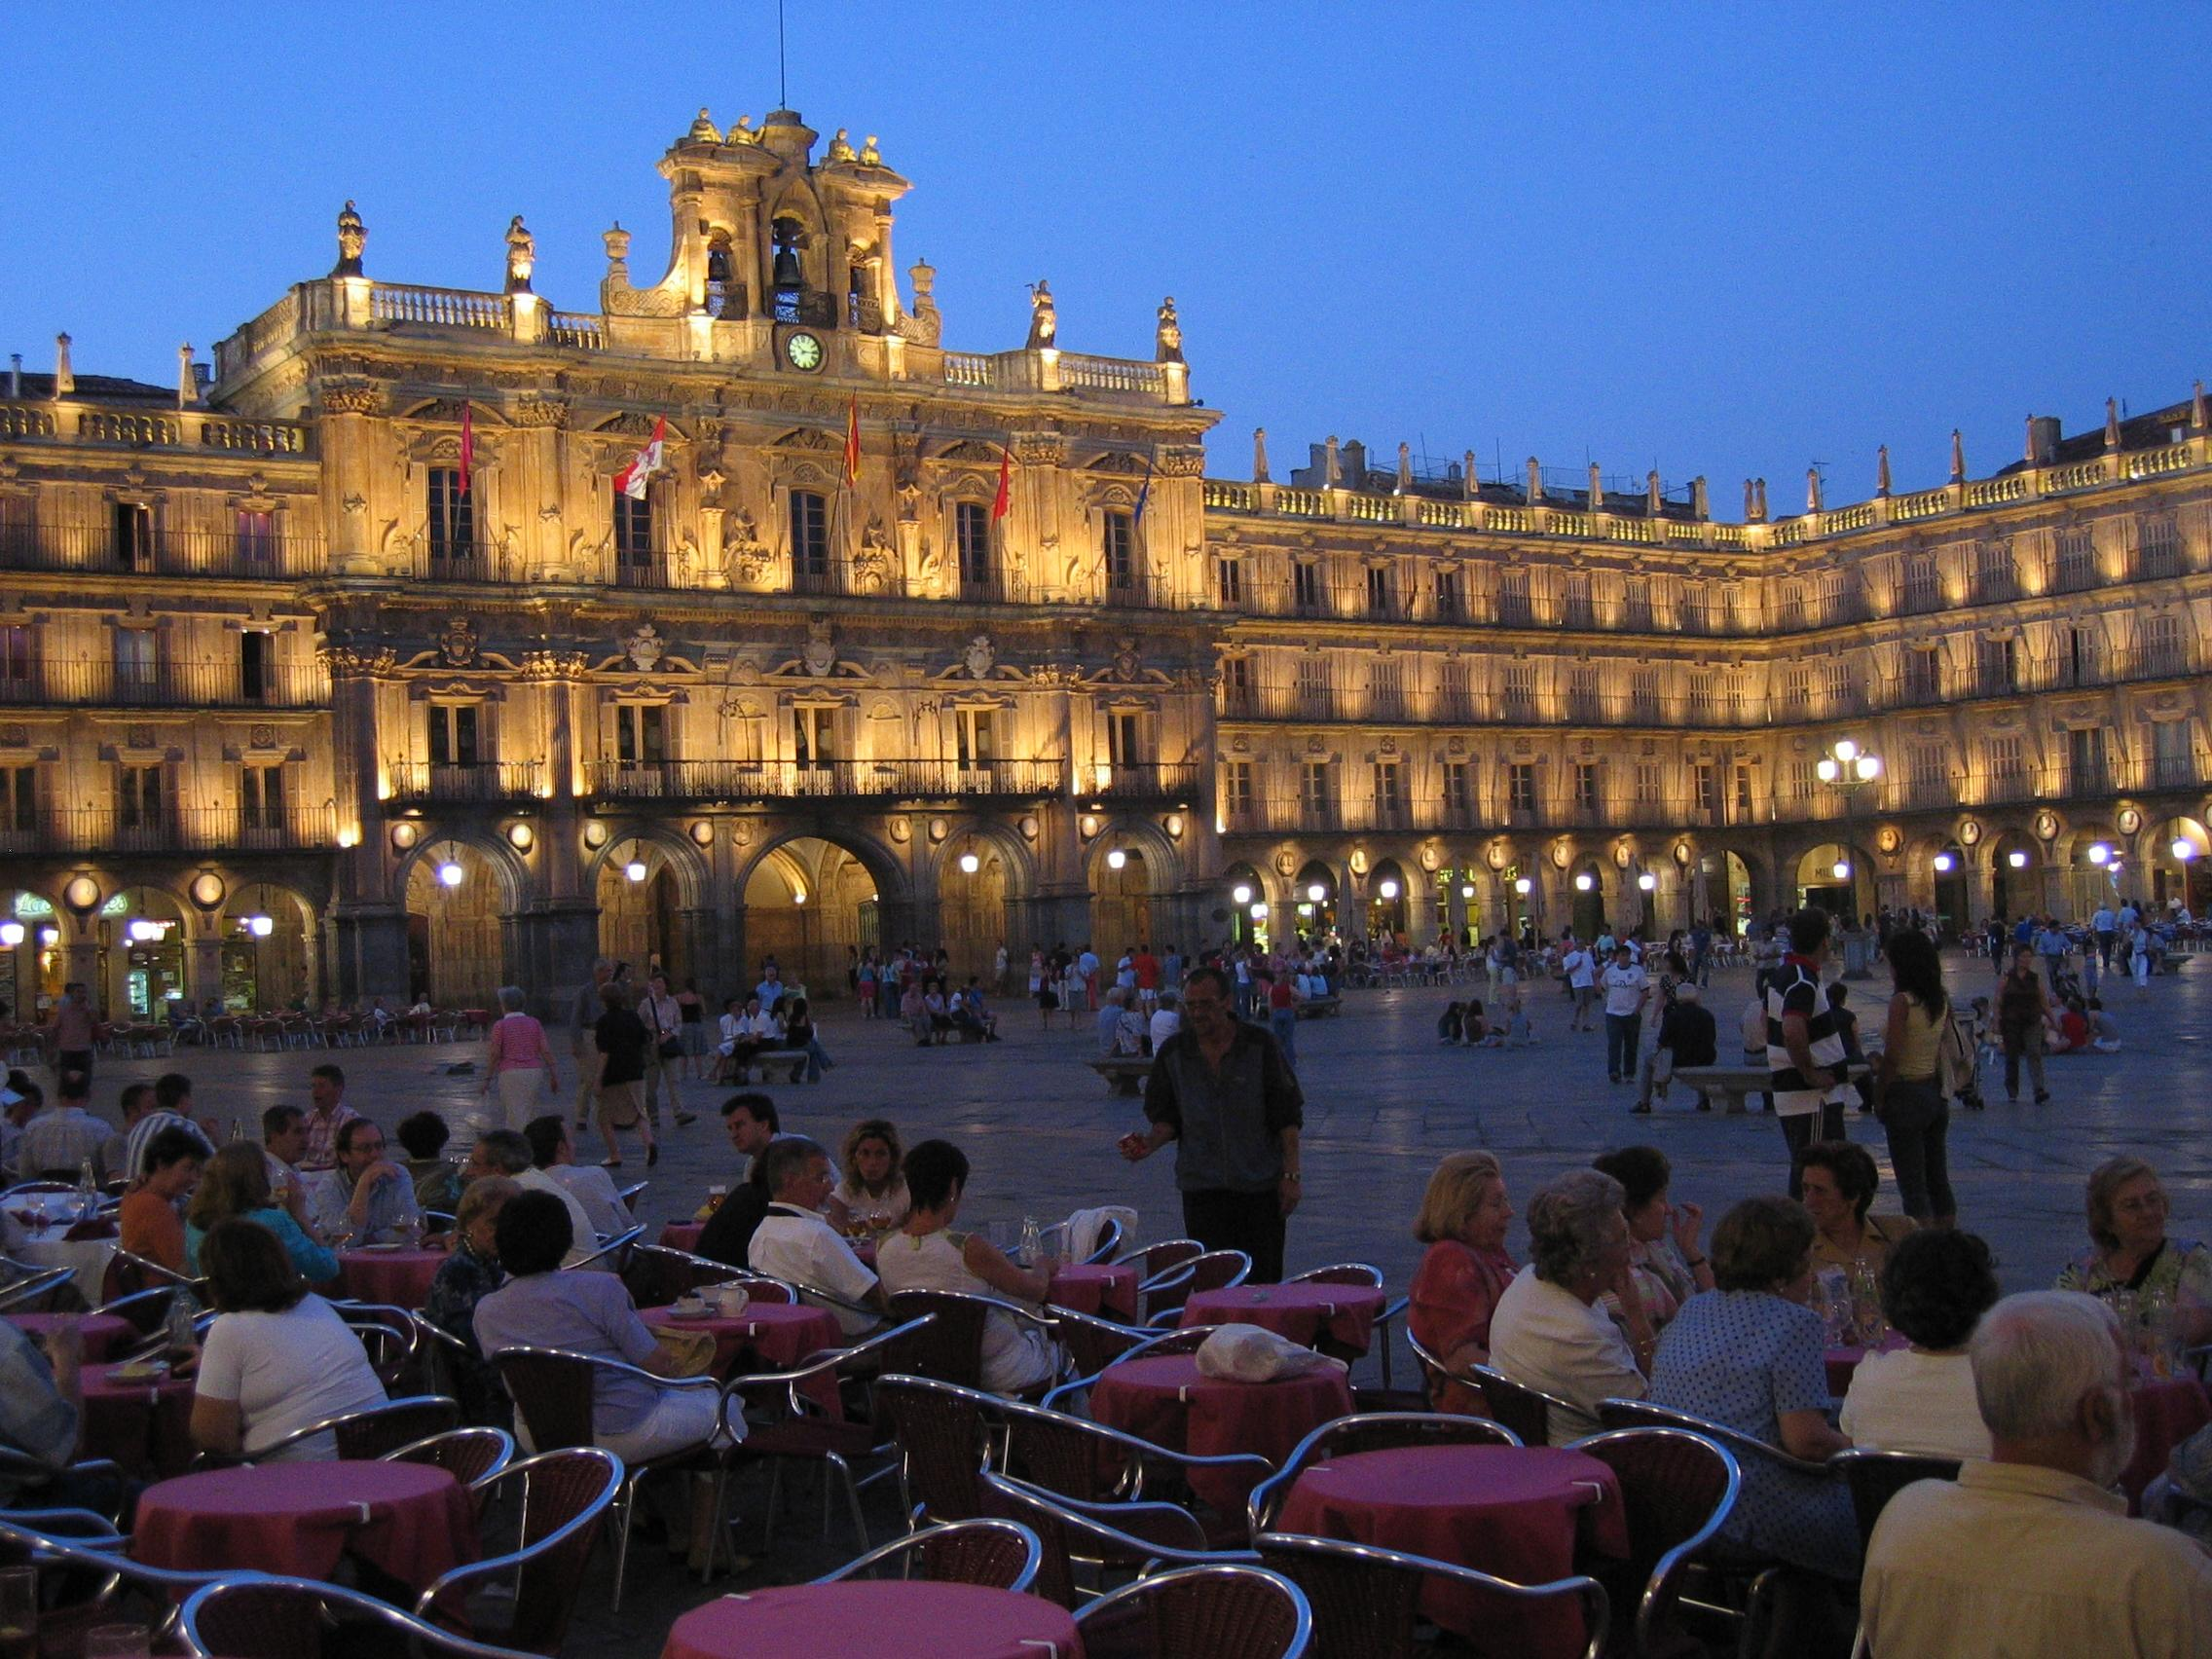 Unbeknownst to most people, Salamanca is one of the best cities in Spain to study abroad!